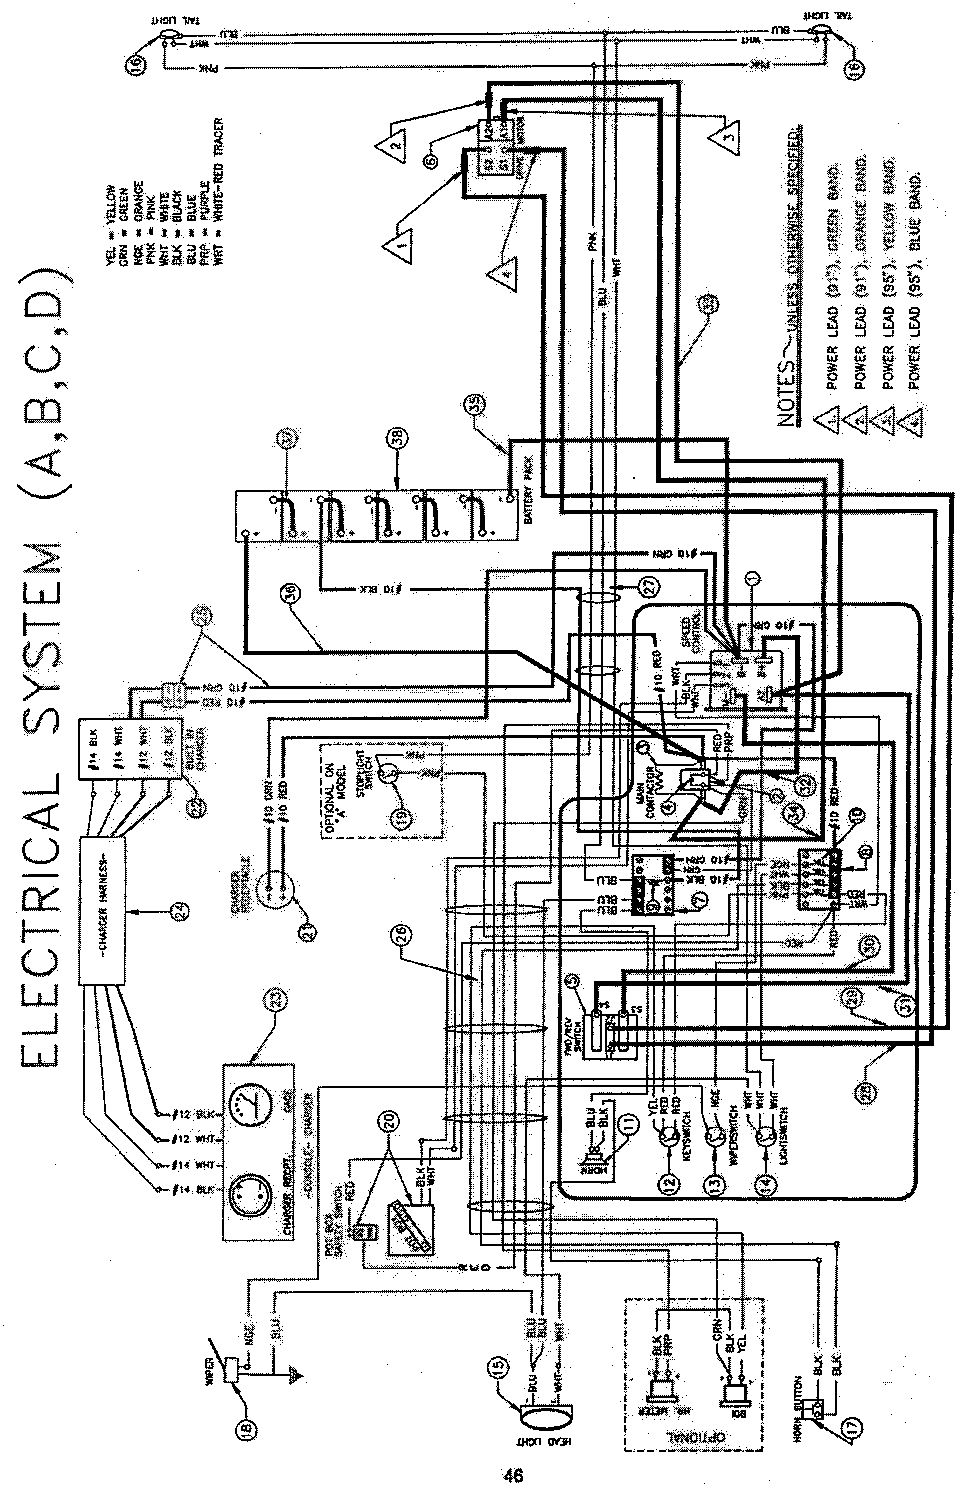 wiring diagram for melex golf cart with Gallery on 3xzju Looking Wireing Diagram 1987 1988 Ezgo Golf furthermore Gallery furthermore Gallery further Club Car Ds Model 48 Volt Battery Pack Golf Carts Wire Diagrams Easy Simple Detail Baja Designs Trailer Light Wiring Club Car Wiring Diagram 48 Volt likewise Club Car Ds Parts.